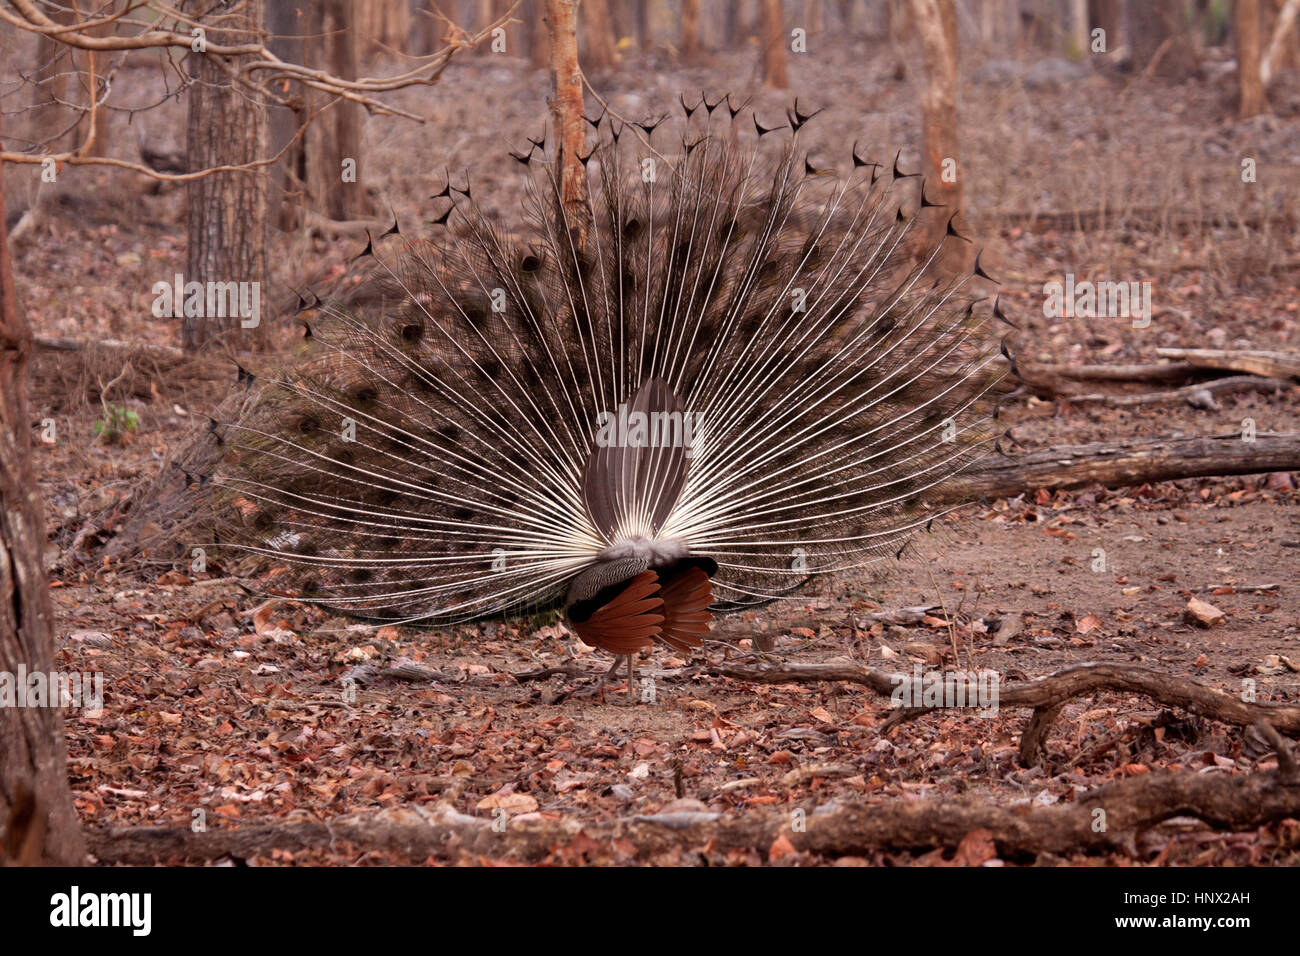 Indian peacock displaying with rear view of fanned out tail - Stock Image